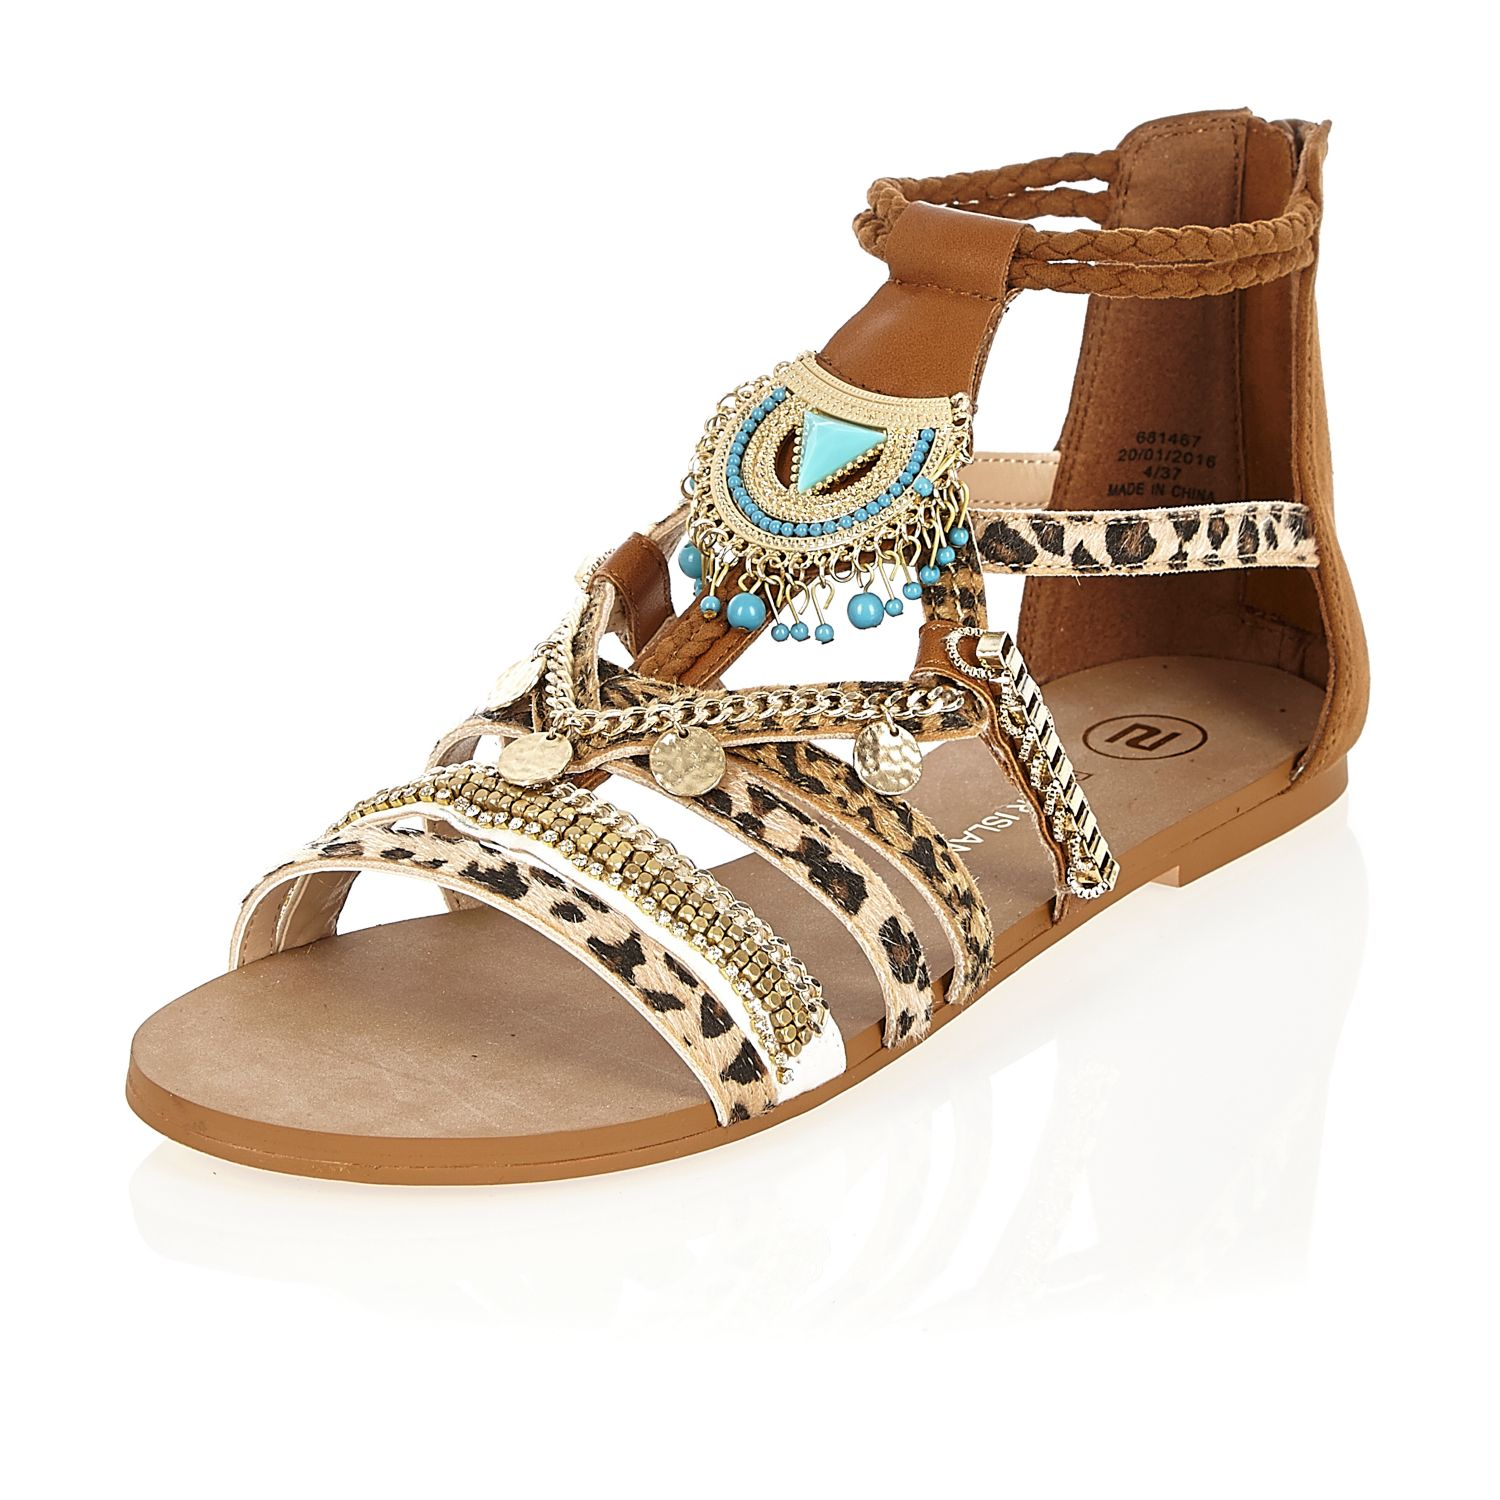 9db982721 Lyst - River Island Brown Embellished Leopard Print Sandals in Brown